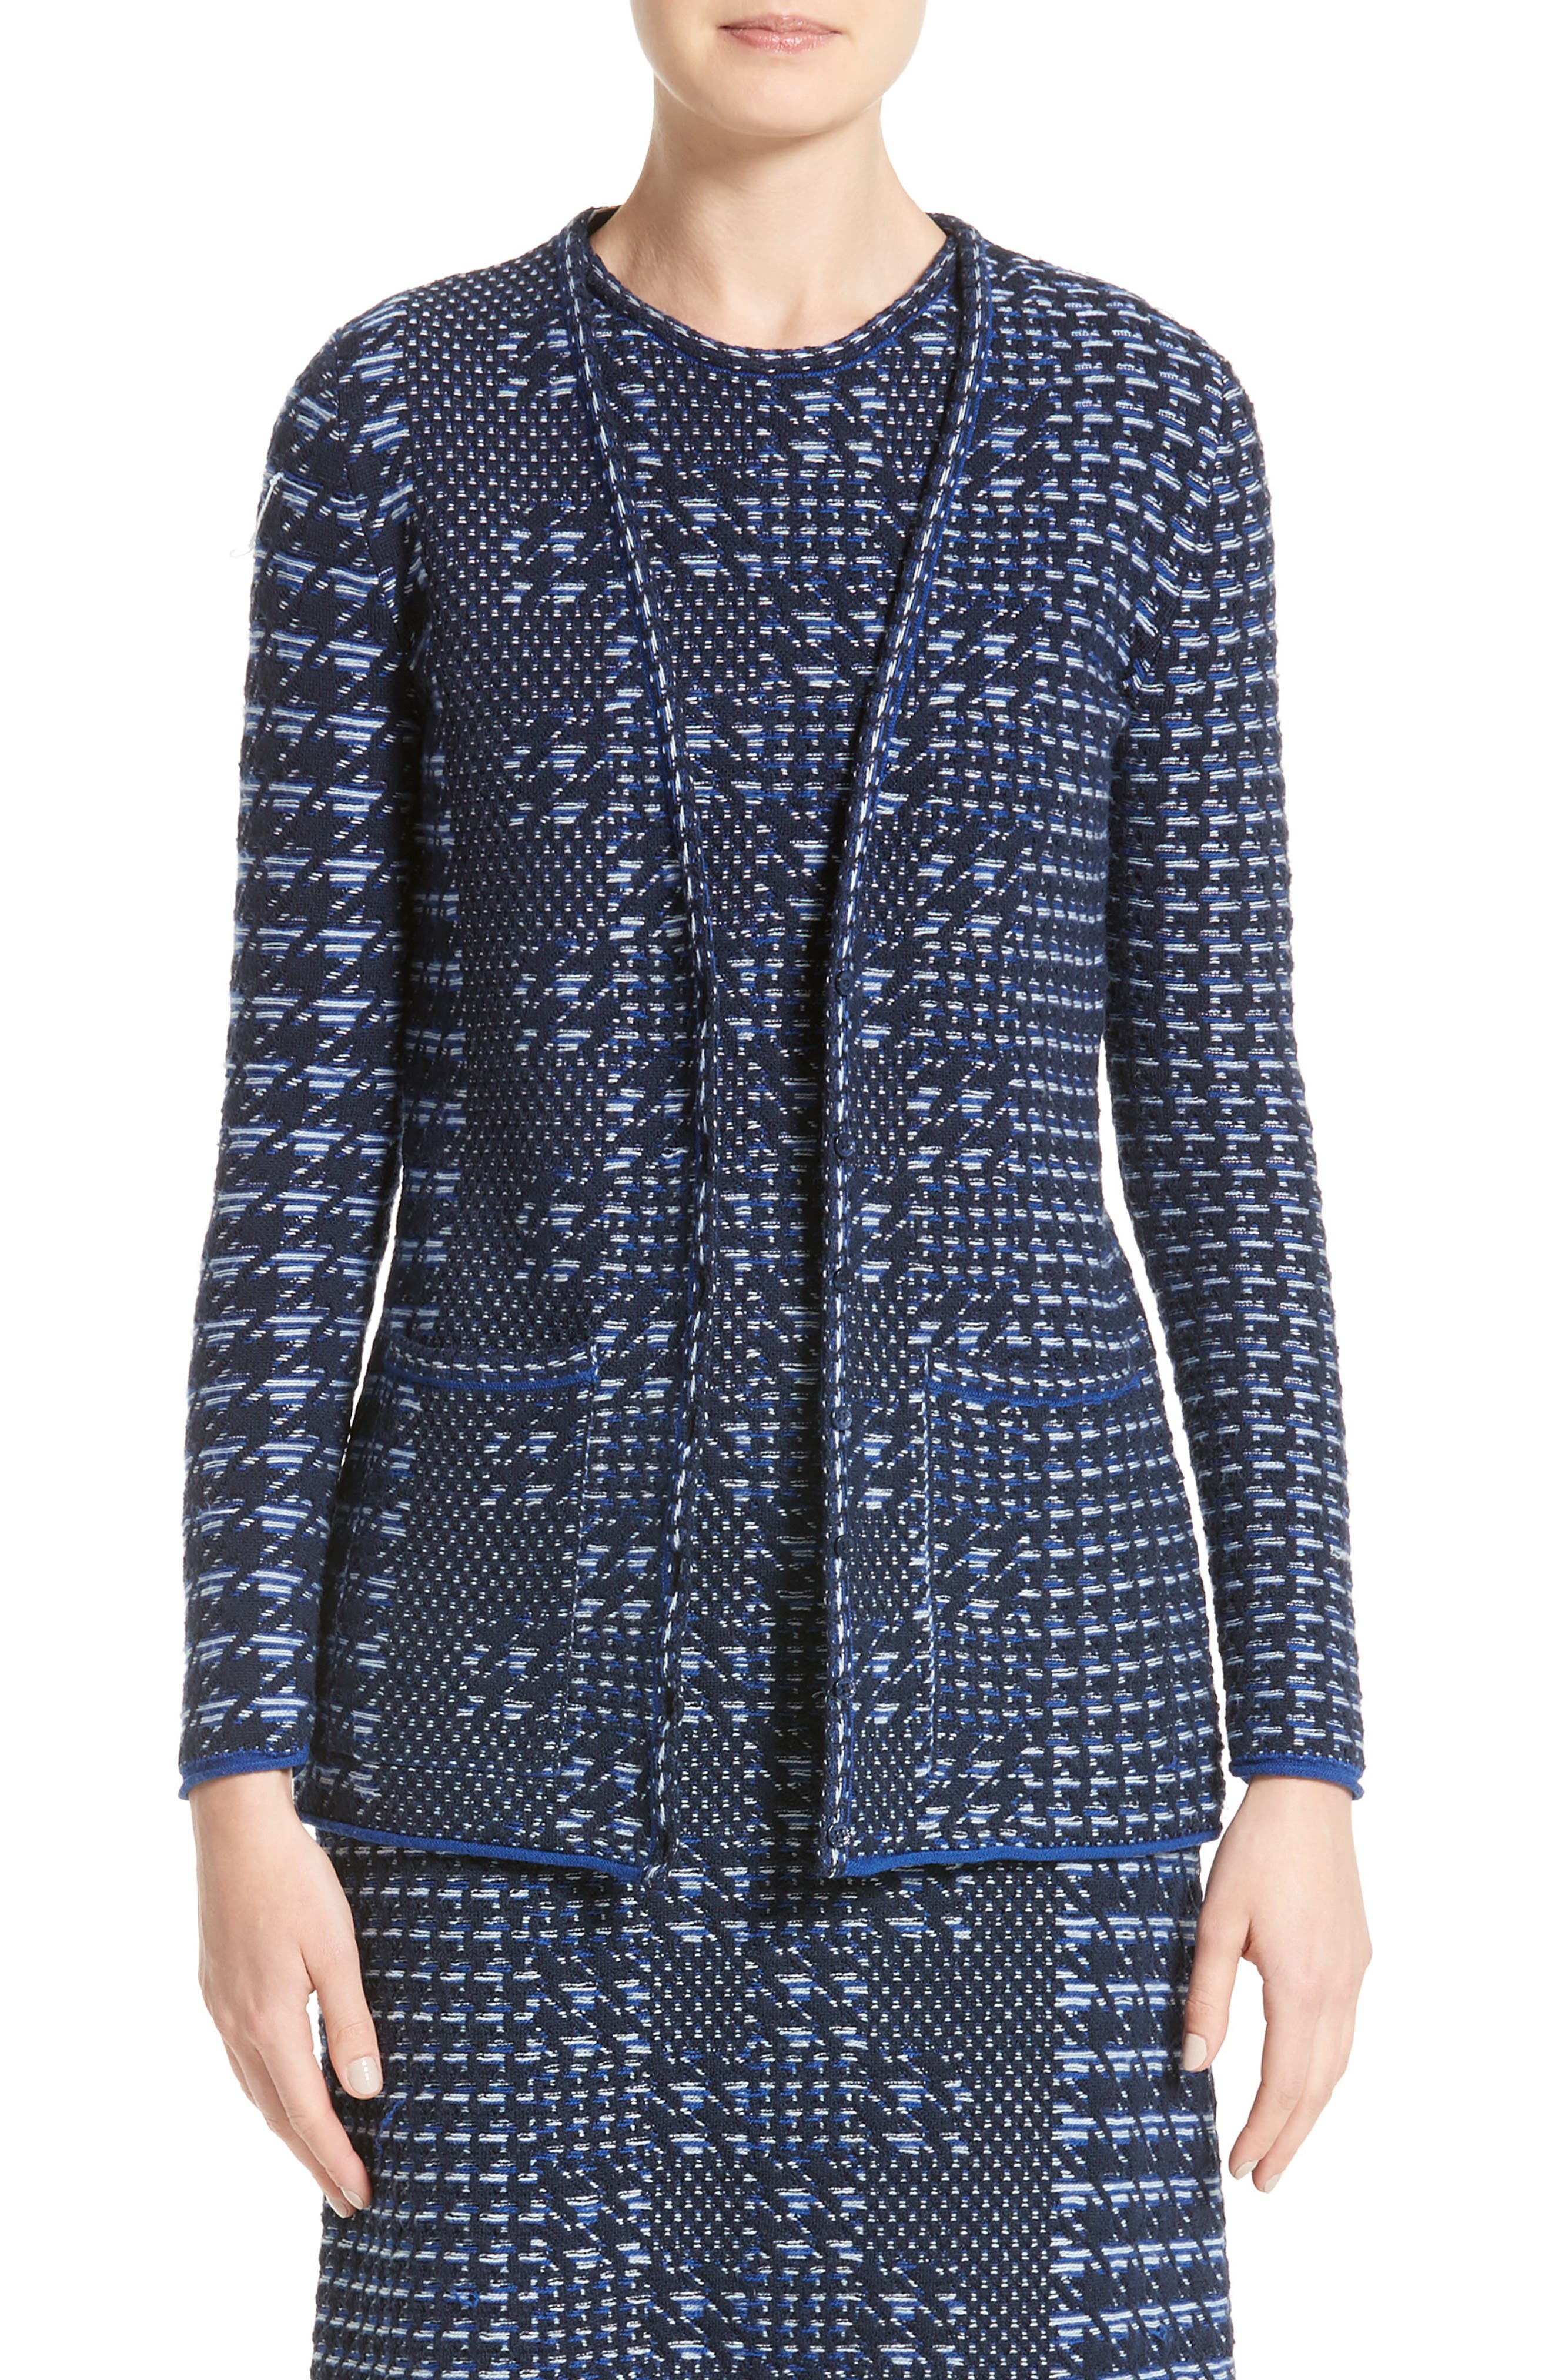 Oscar de la Renta Pixelated Houndstooth Cardigan